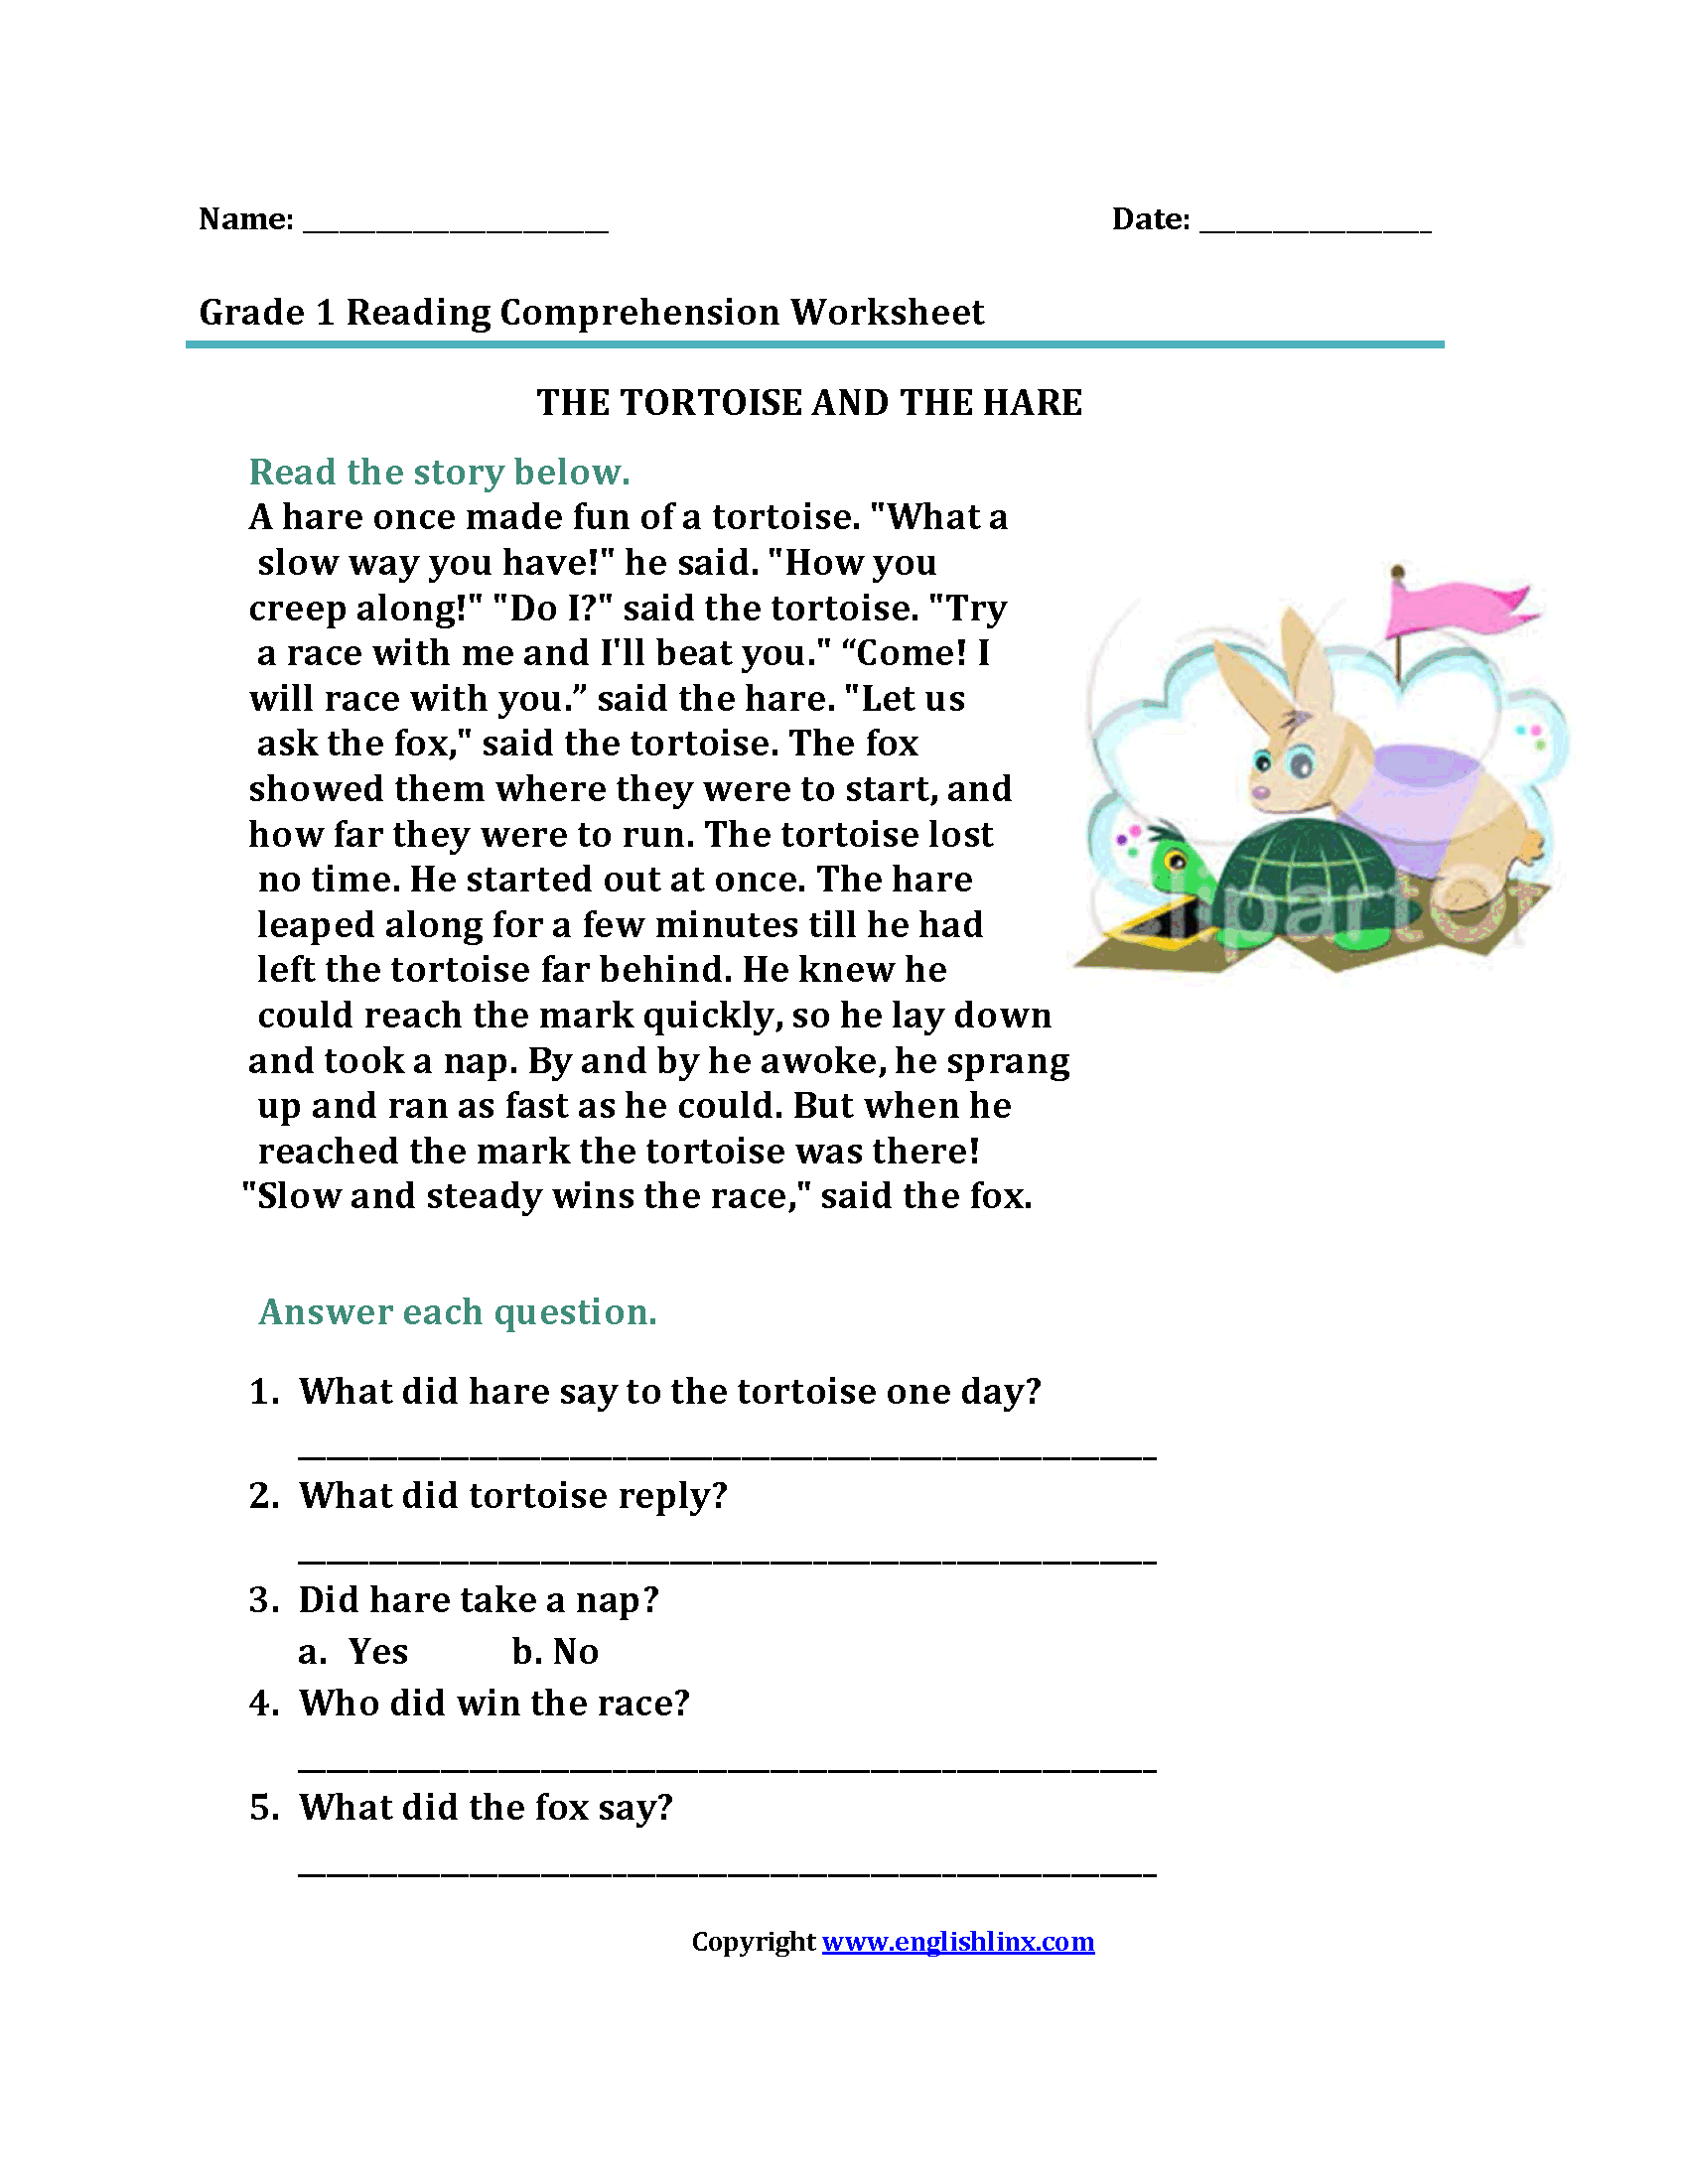 Tortoise and the Hare<br>First Grade Reading Worksheets